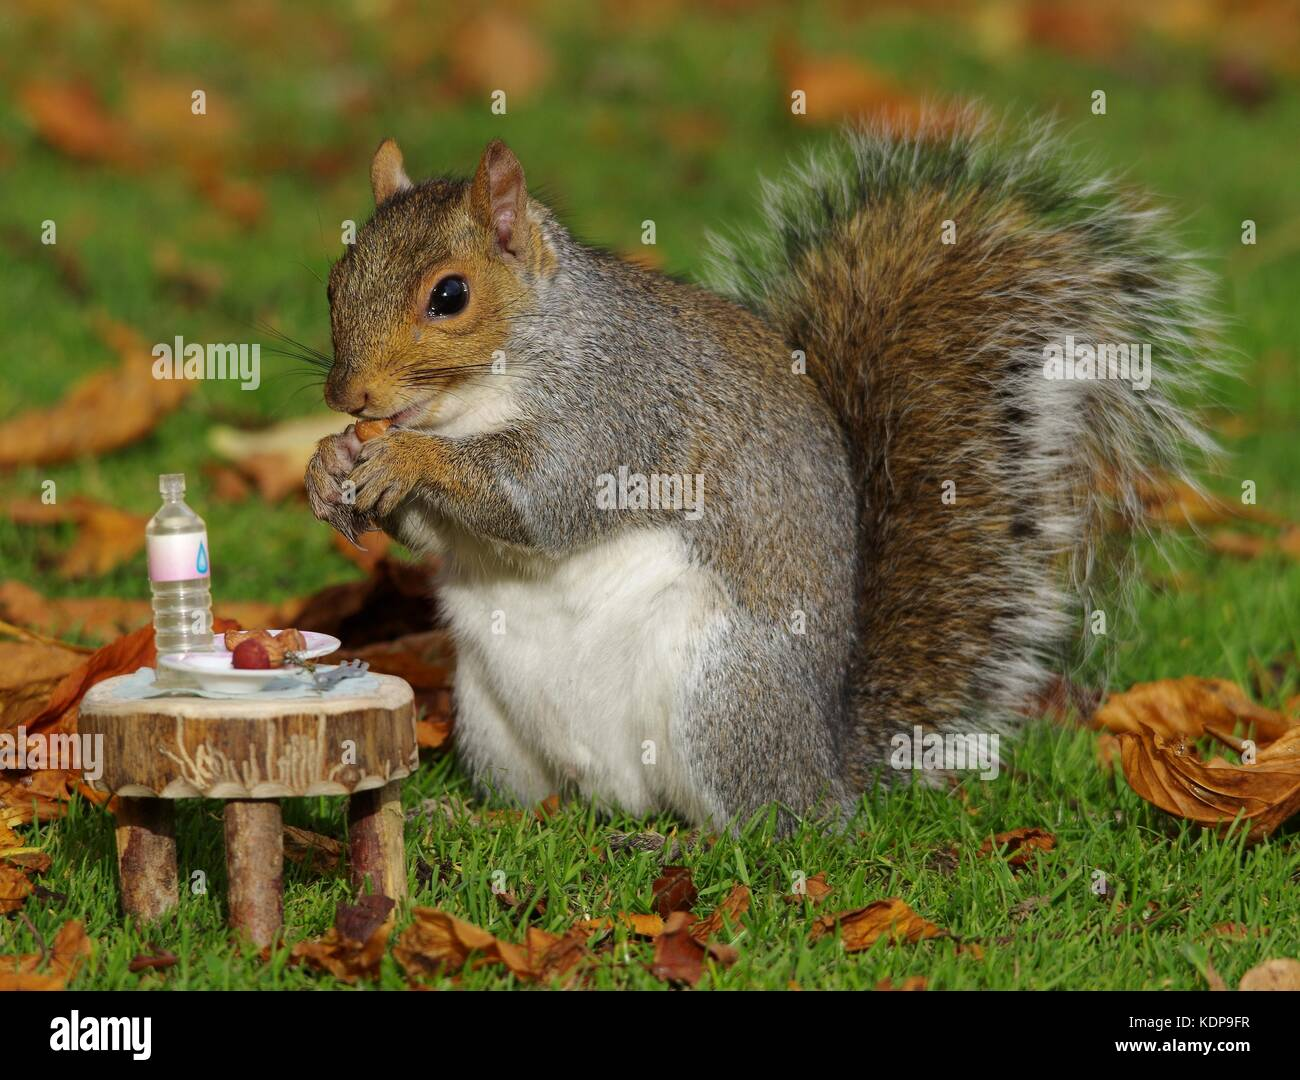 grey squirrel with small picnic table in park autumn leafs on ground - Stock Image